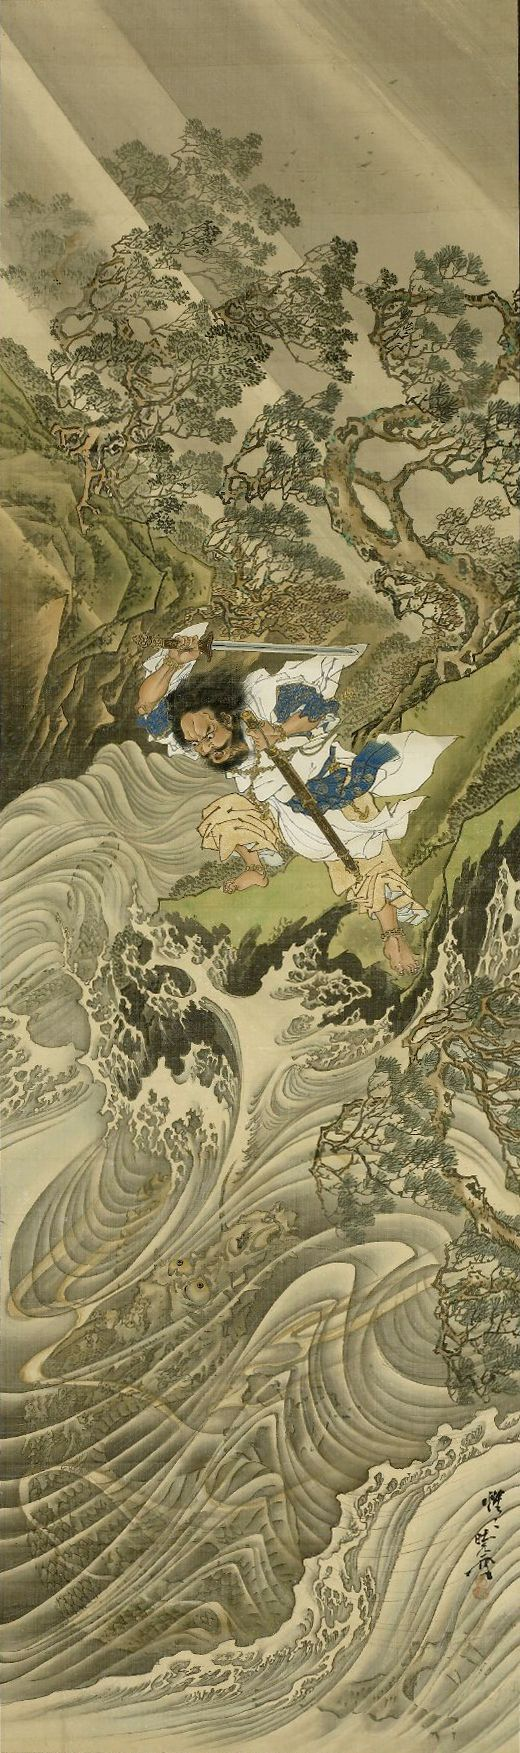 Kawanabe Kyōsai (河鍋 暁斎, May 18, 1831–April 26, 1889). Susano-o no Mikoto subduing Yamata no Orochi, eight-headed serpent in form of dragon, coming up out of raging sea on storm-swept rocky coast.  Meiji period, 1887. TYPE: Hanging scroll, color on silk. DIMENSIONS: 100.4 x 29.7 cm.